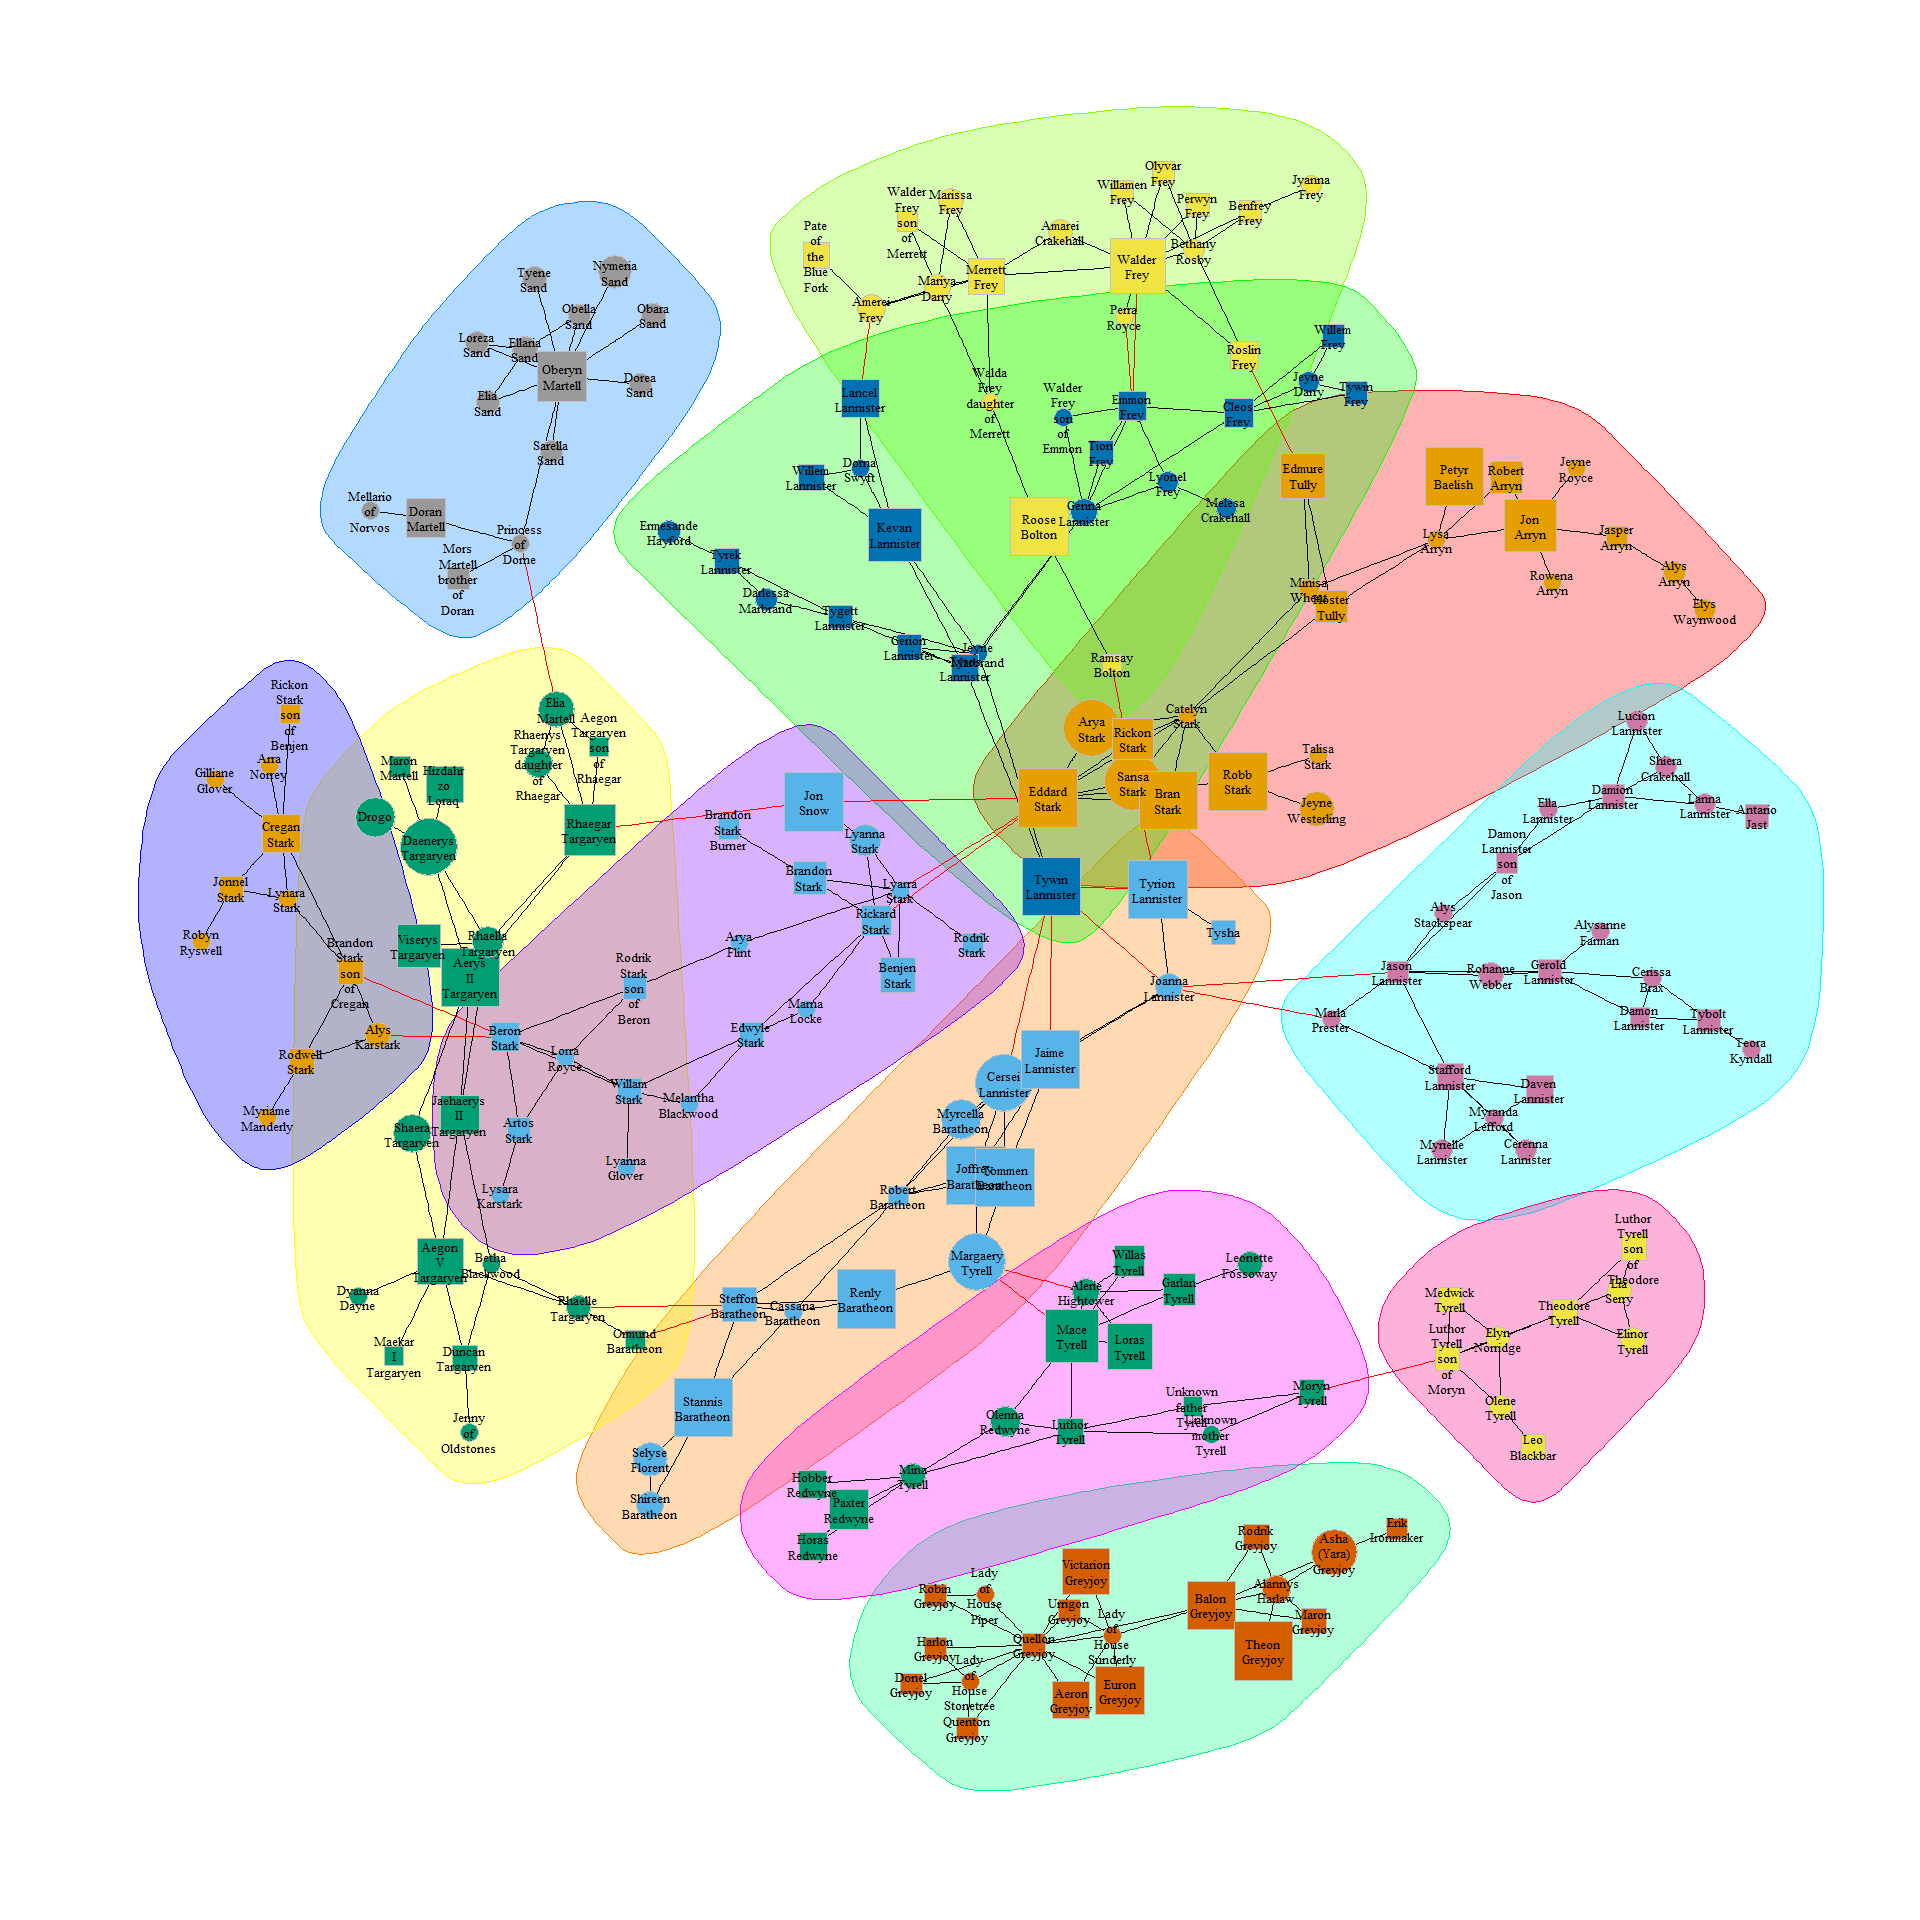 Network analysis of Game of Thrones family ties